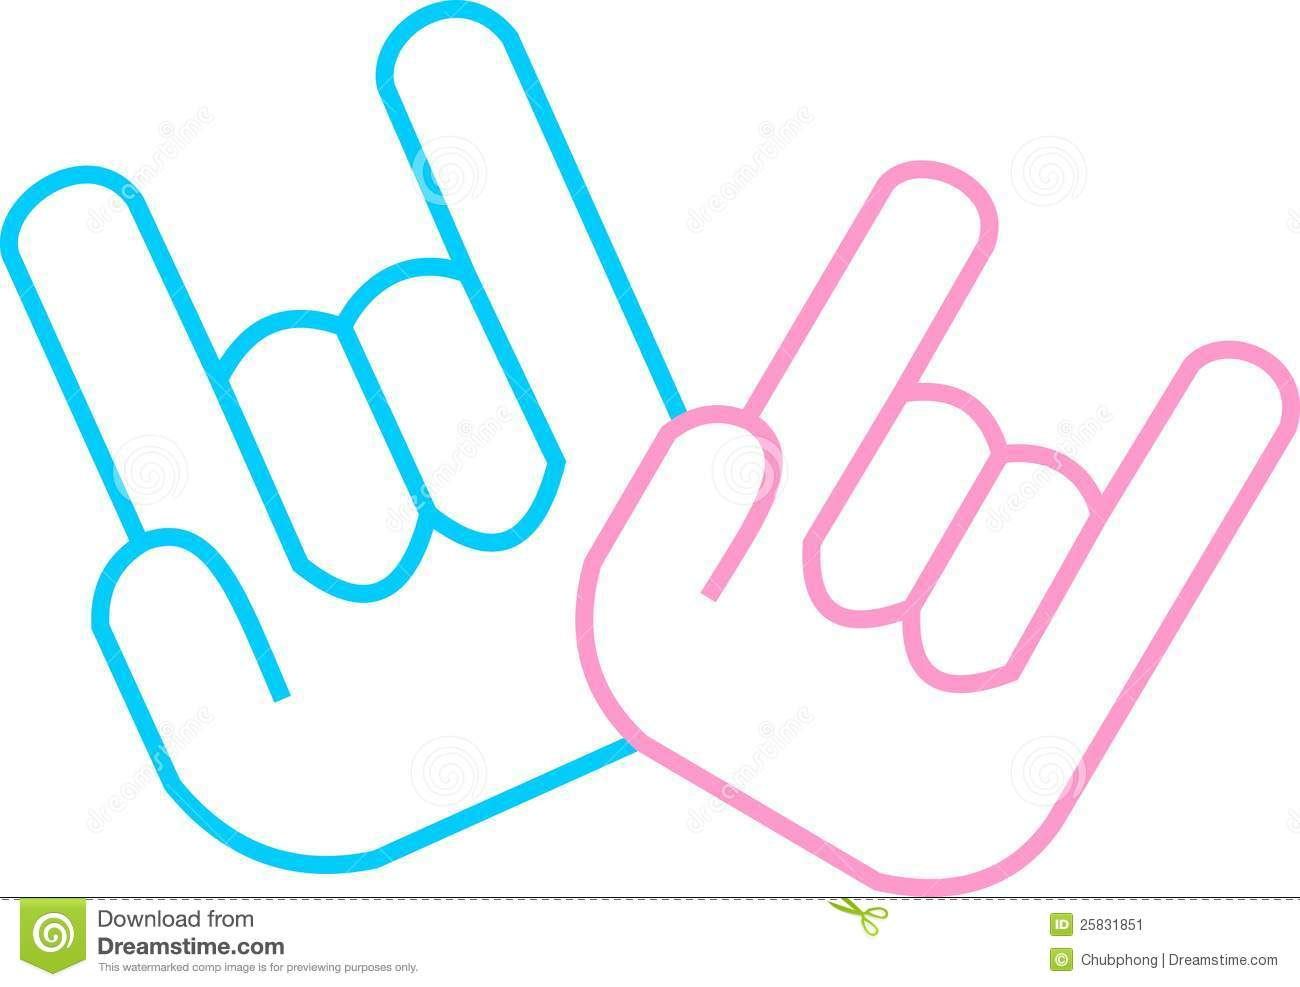 Sign language i love you clipart picture freeuse library I love you hand sign clipart - ClipartFest picture freeuse library